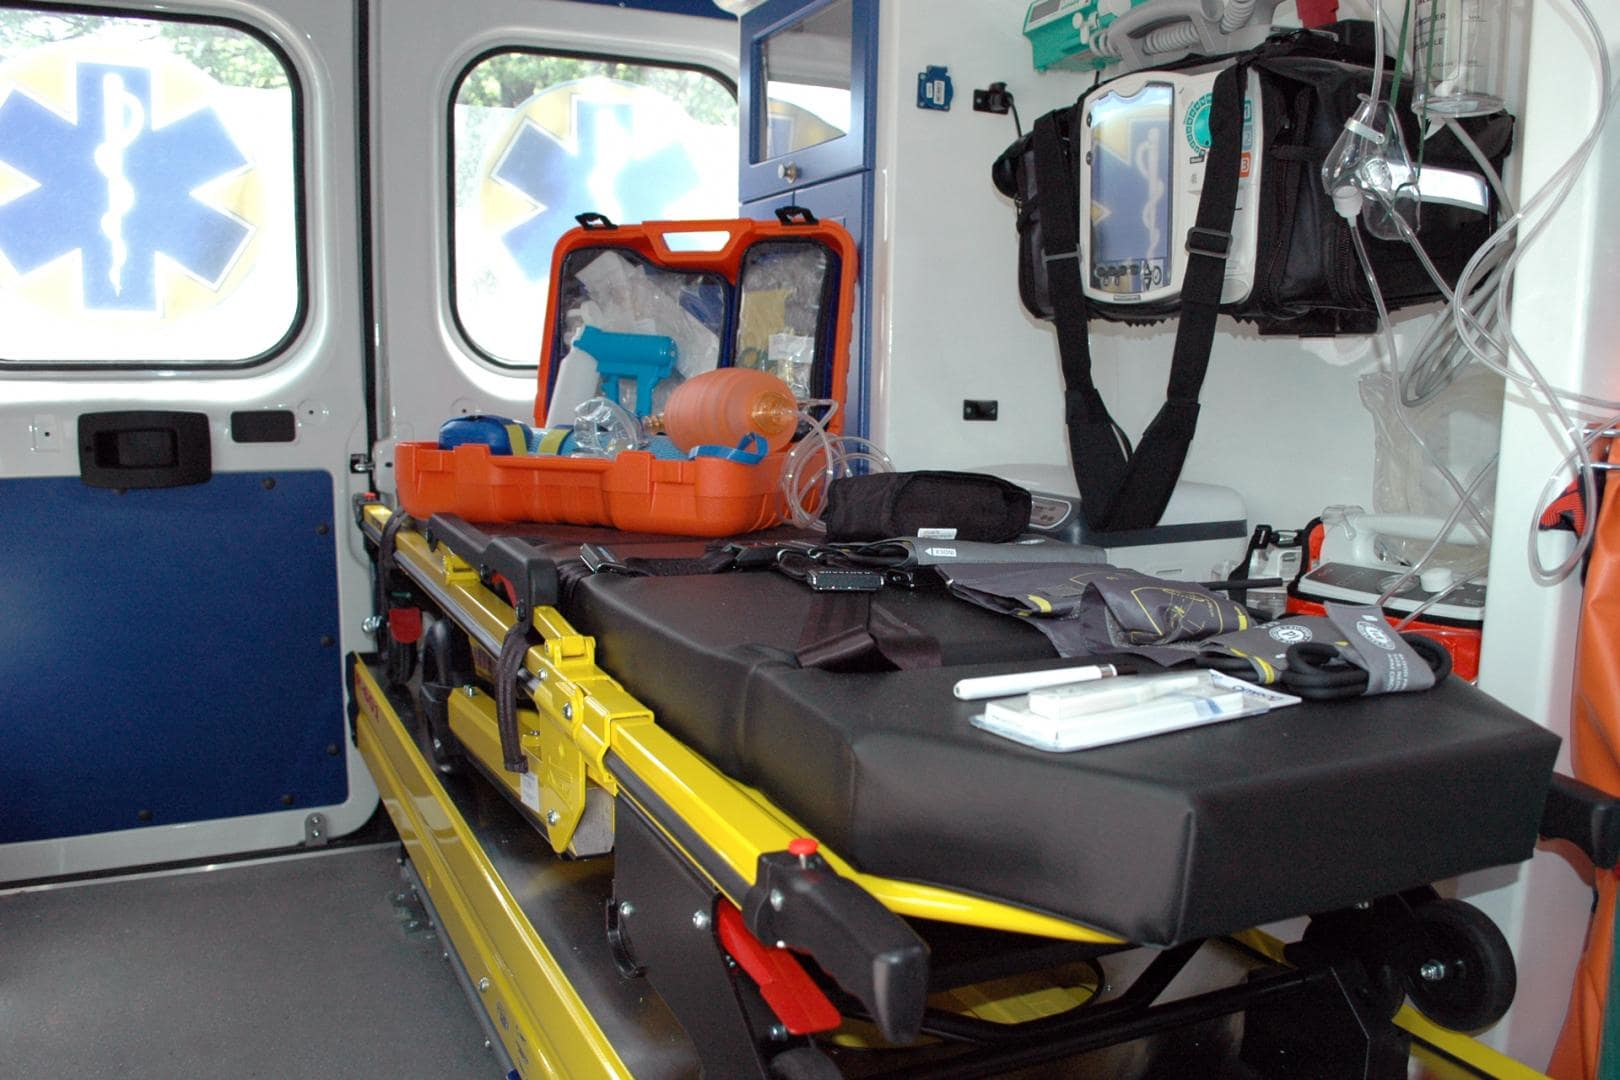 photo intérieur de l'ambulance